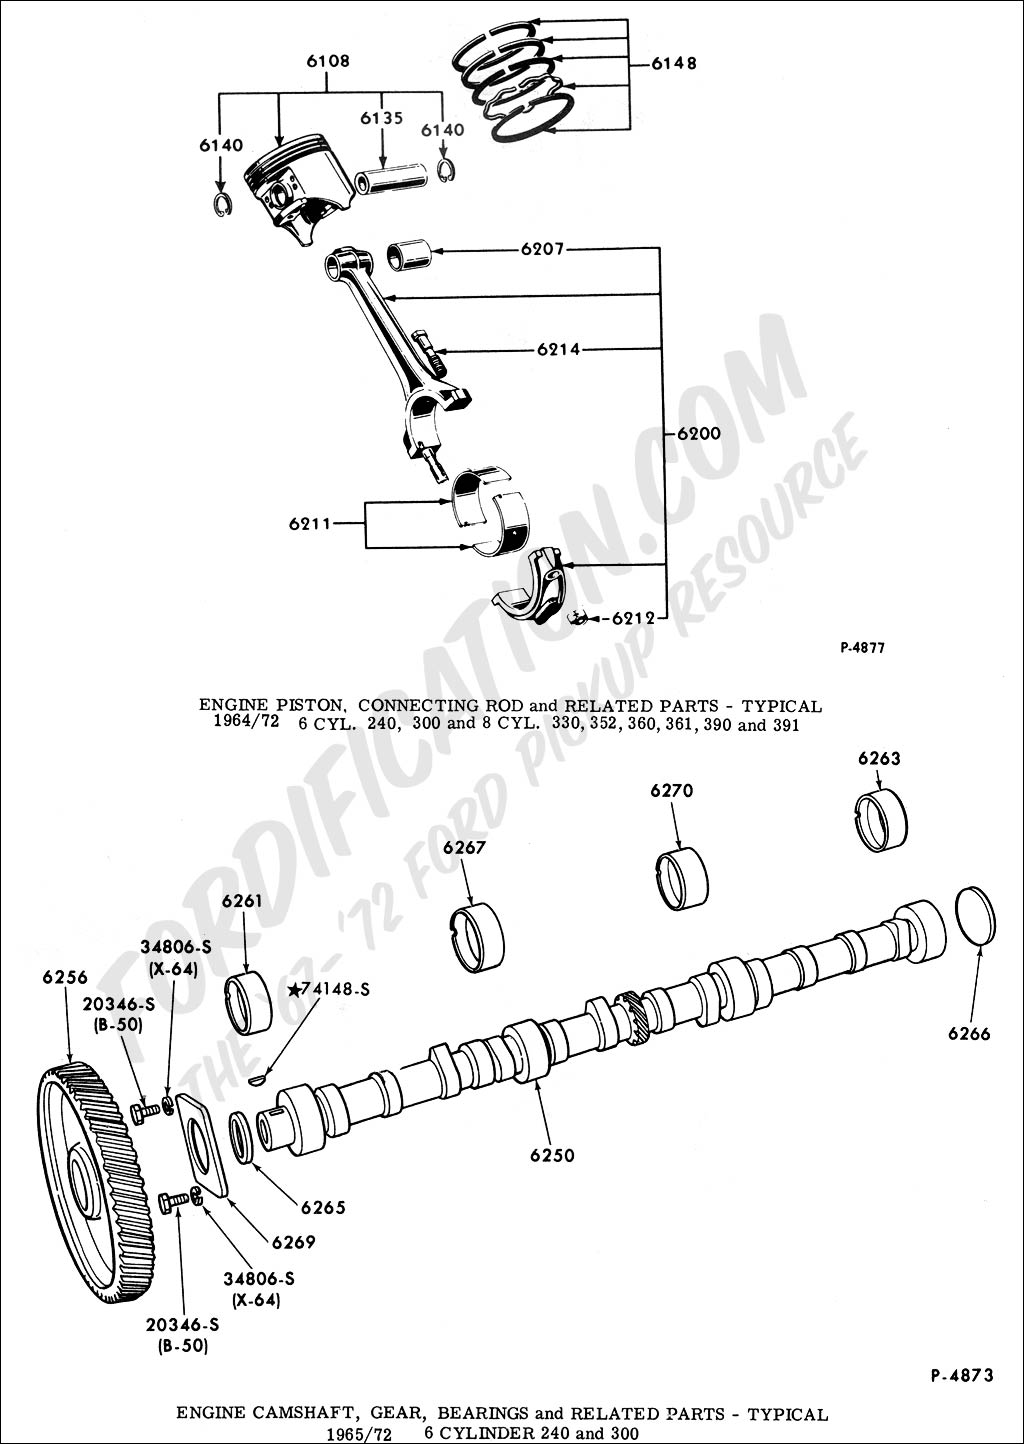 Engine Cam Diagram also Gas Scooter Wiring Diagram as well 2010 Honda Vt750rs Shadow Rs Wiring And Harness in addition Motorcycleenginerepair additionally Schematic Piston Engine Diagram. on 4 stroke v twin engine diagram